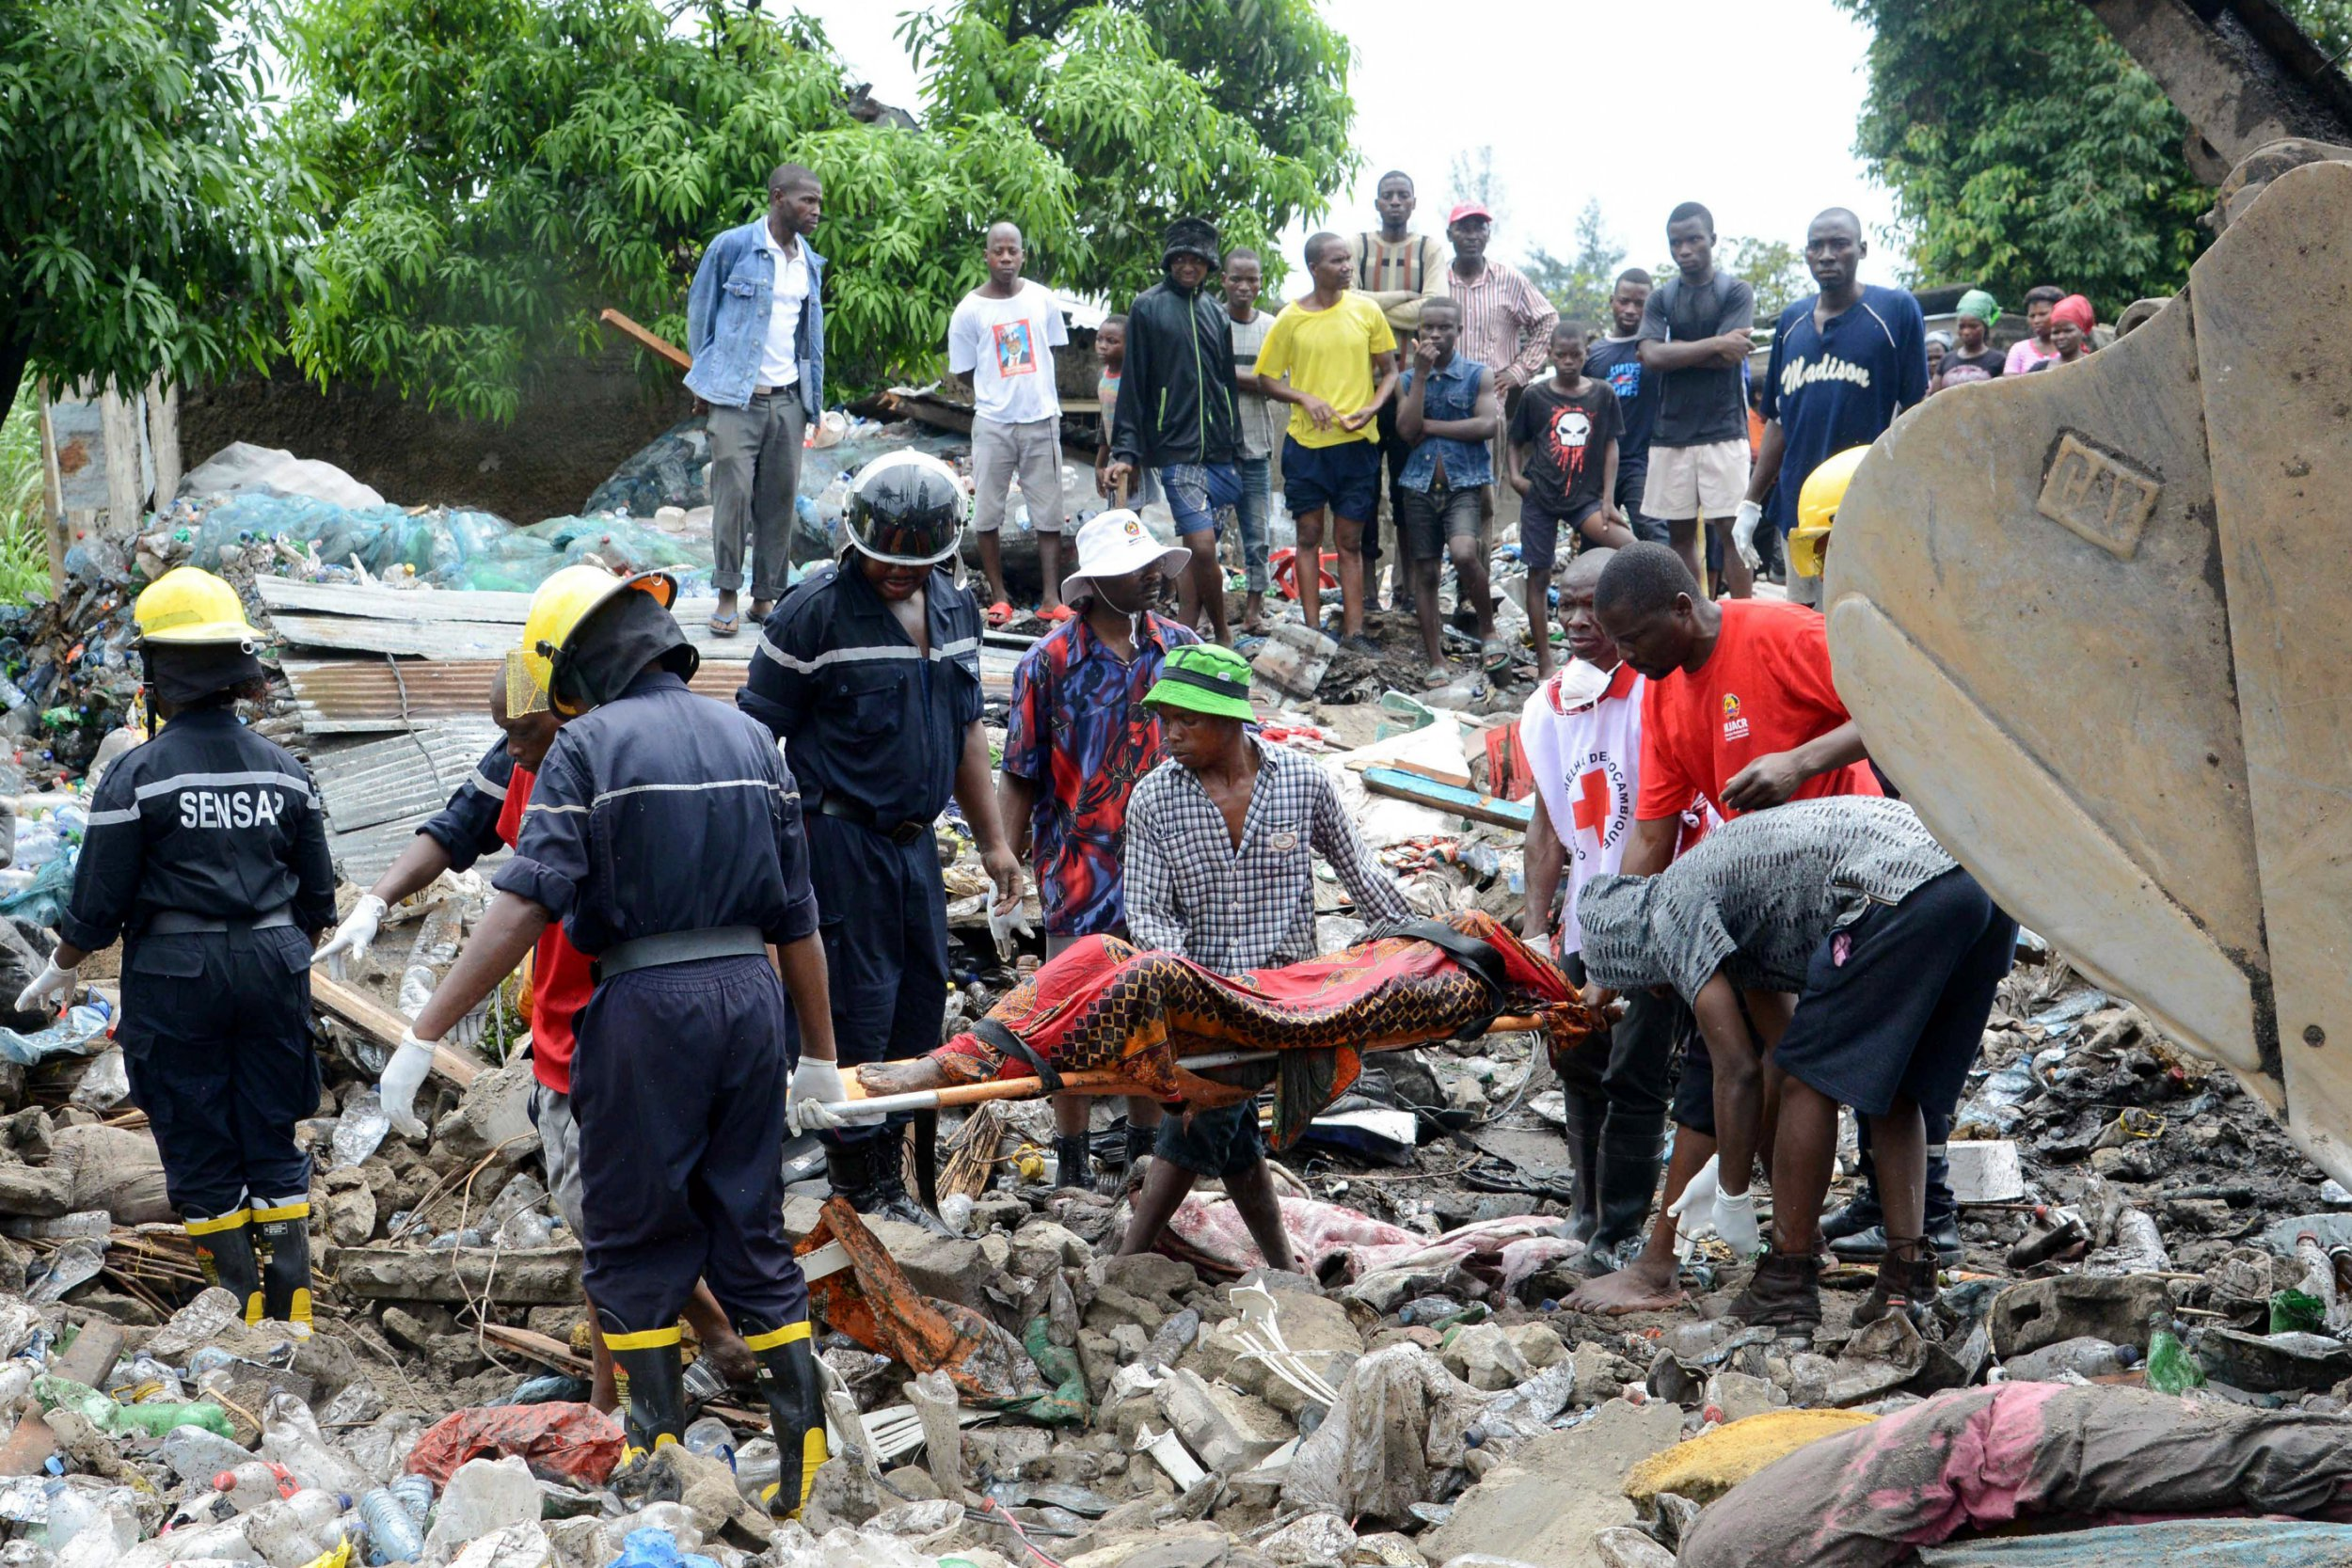 At least 17 dead after huge mound of rubbish collapses in Mozambique